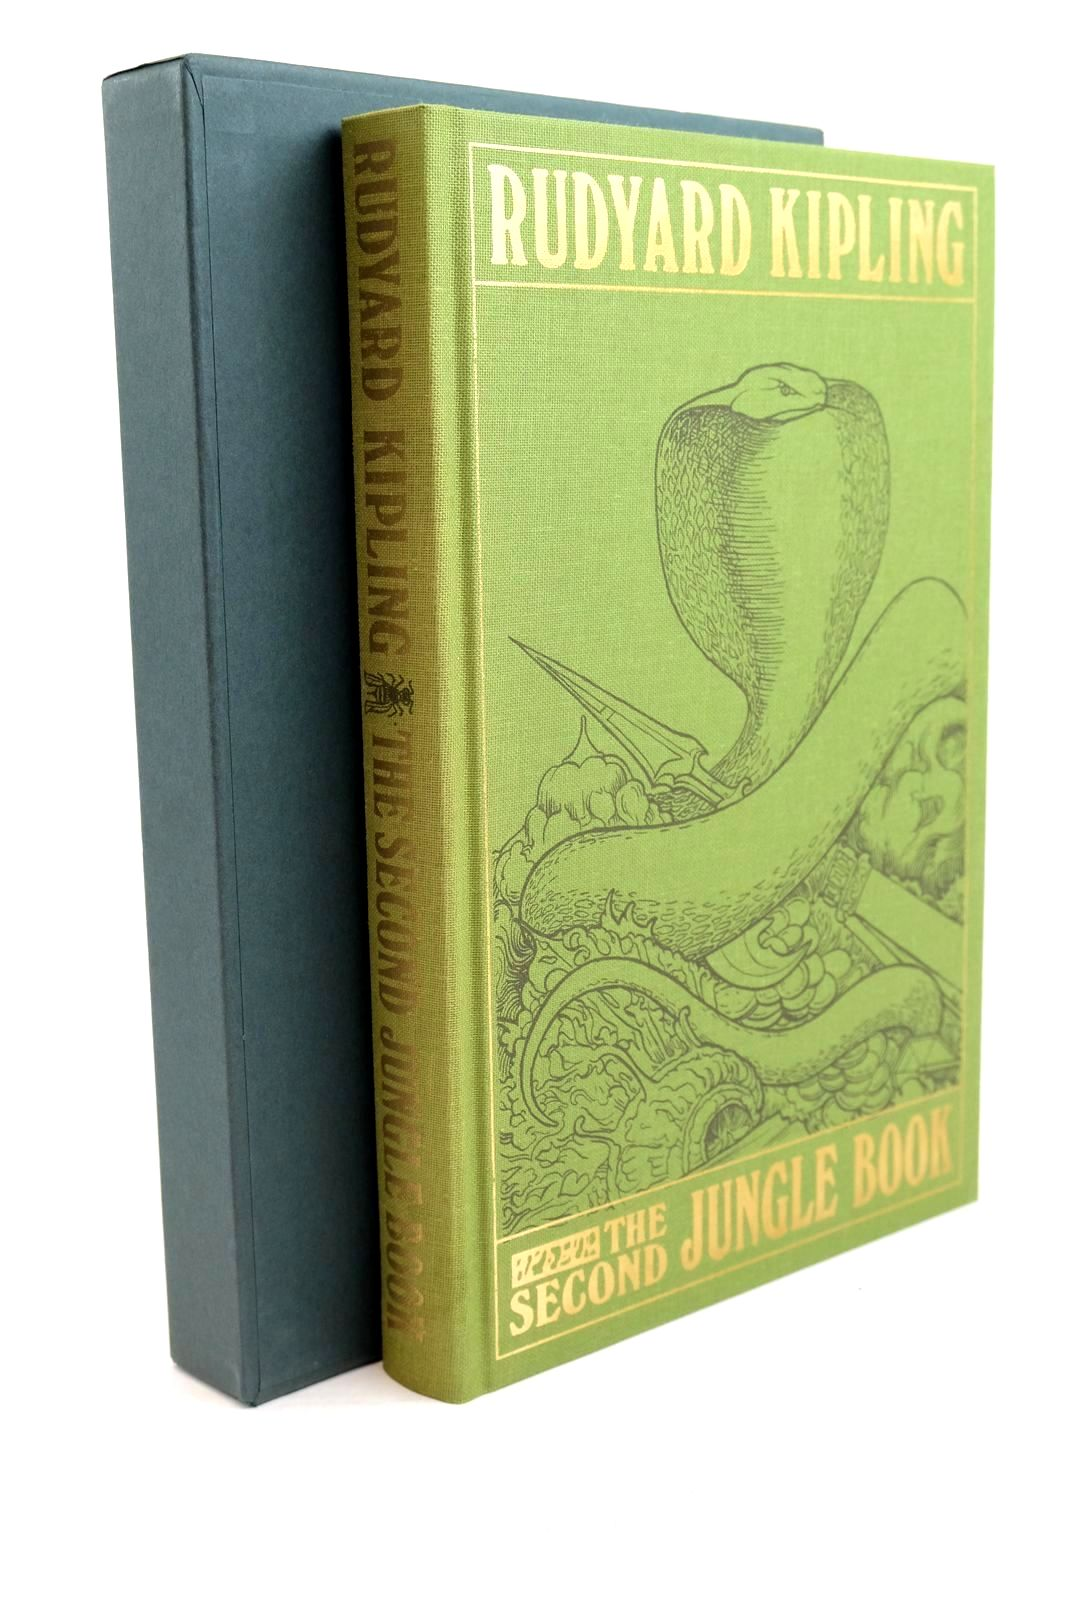 Photo of THE SECOND JUNGLE BOOK written by Kipling, Rudyard illustrated by Detmold, Edward J. Eccles, David published by Folio Society (STOCK CODE: 1320916)  for sale by Stella & Rose's Books